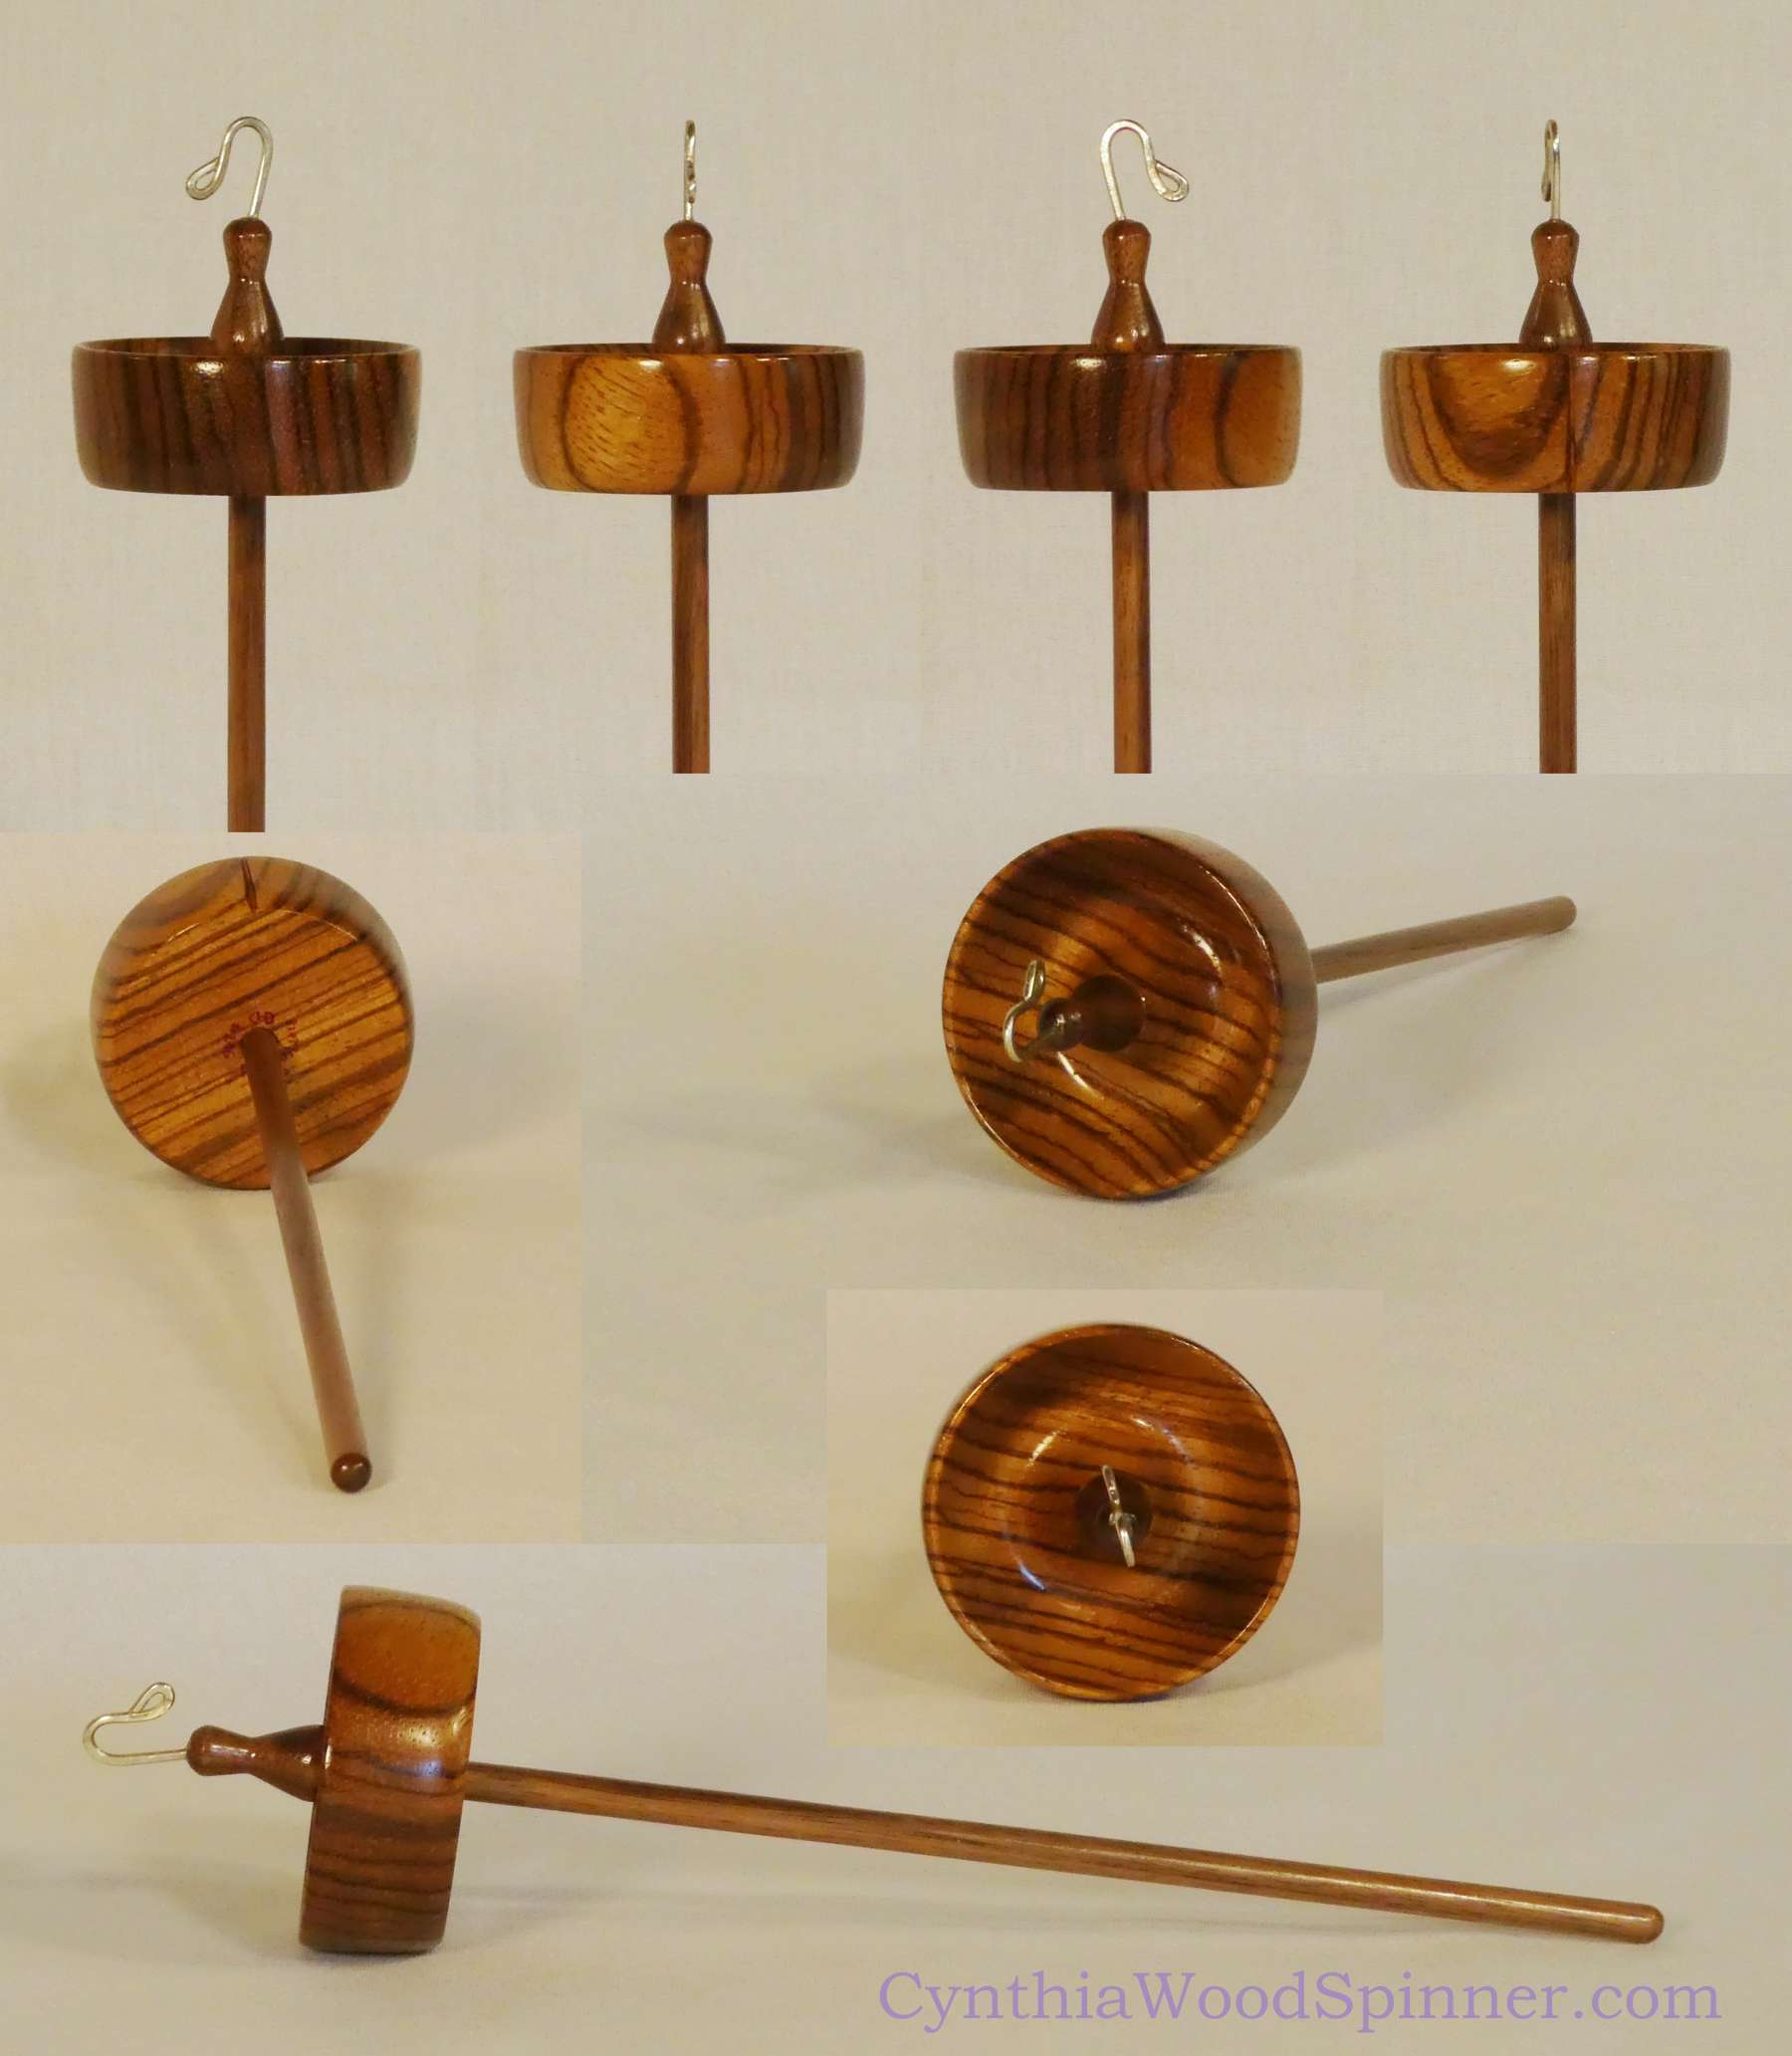 Luxury branch size top whorl drop spindle in Zebrawood and Black Walnut hand made by Cynthia D. Haney